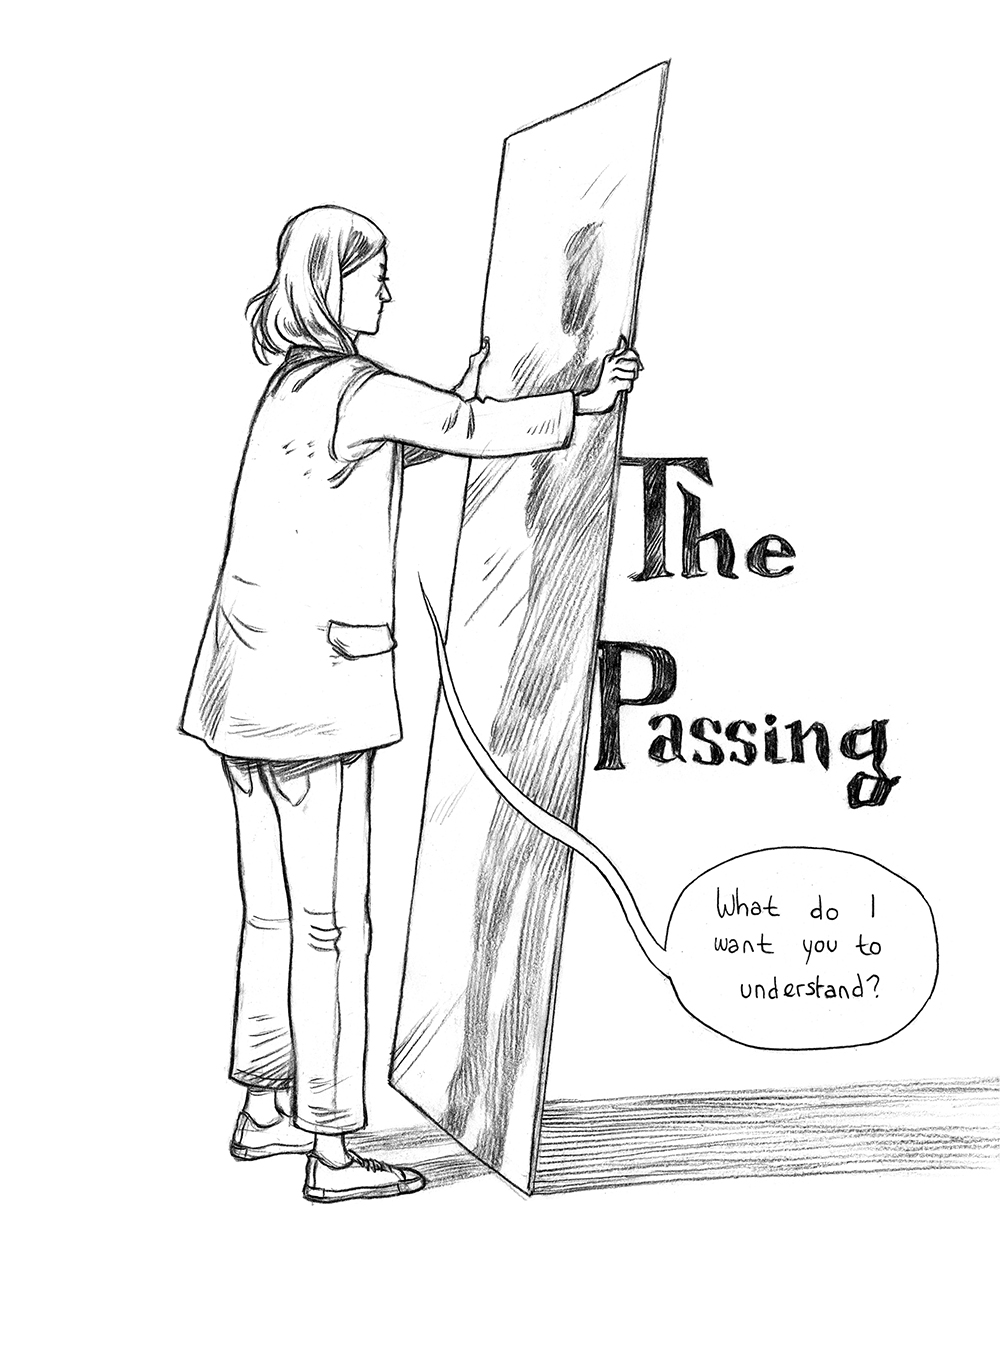 the_passing_01